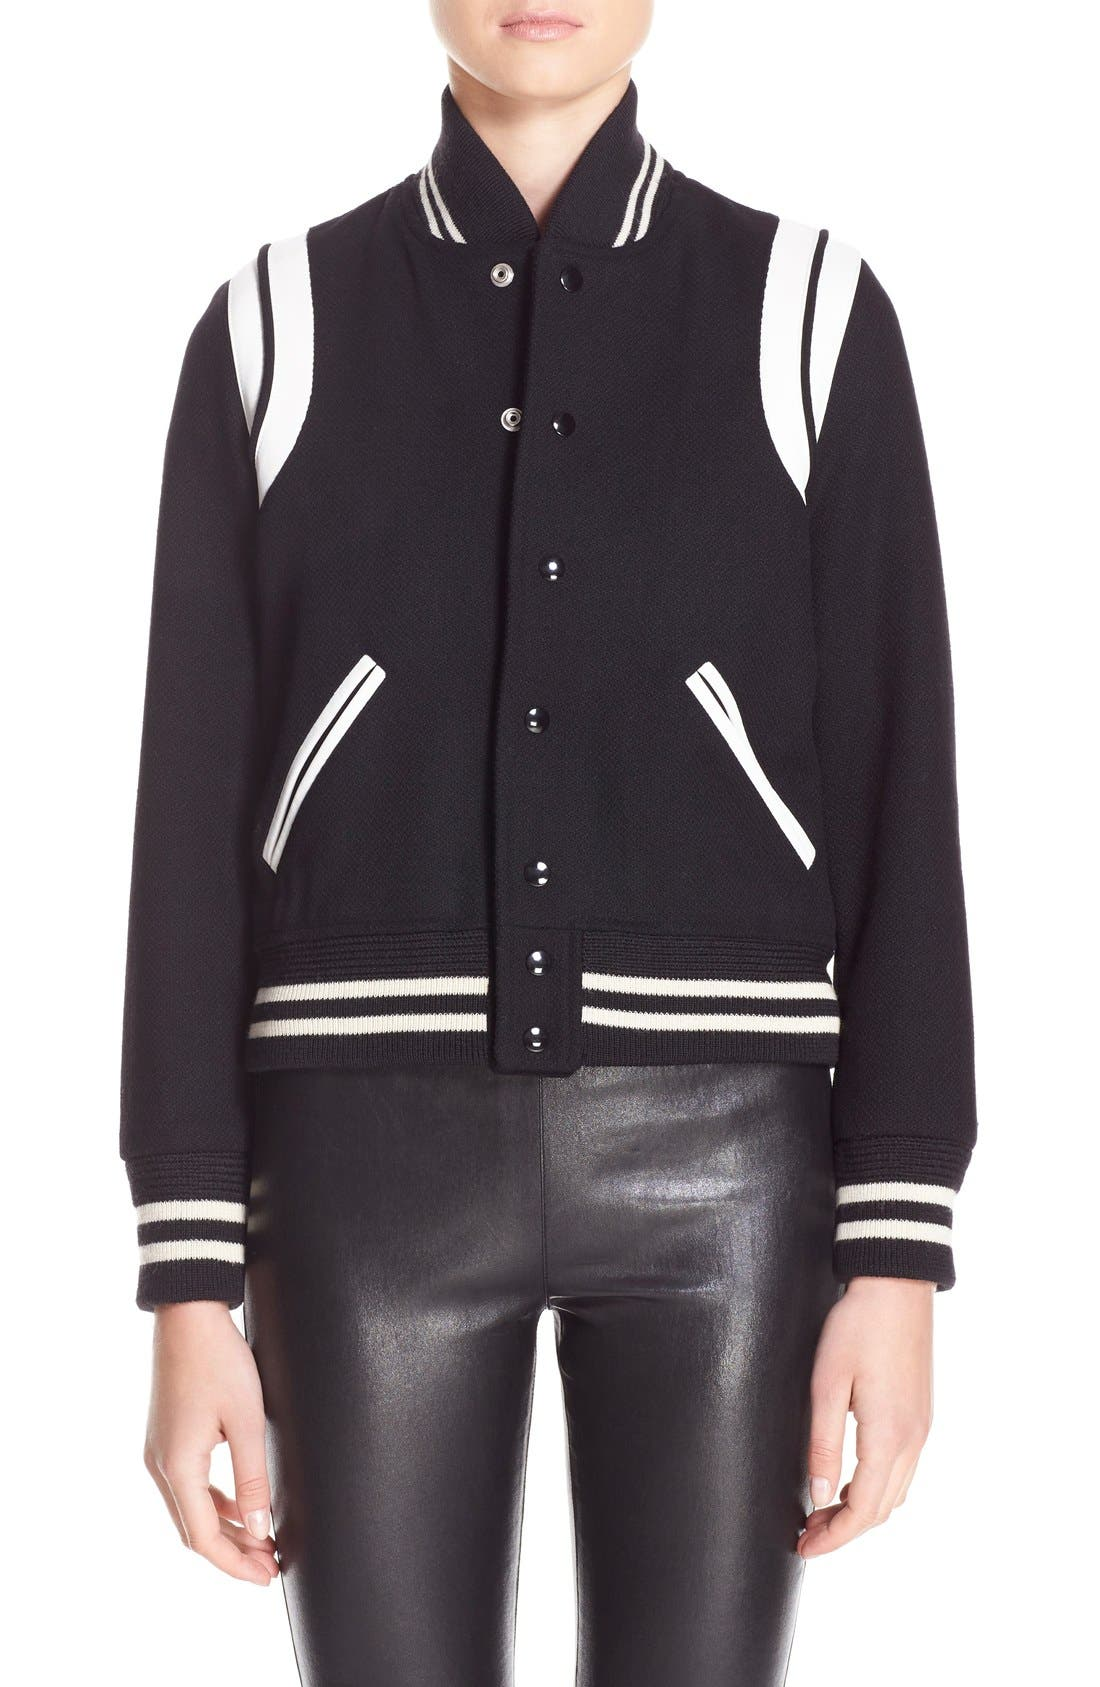 'Teddy' White Leather Trim Bomber Jacket,                         Main,                         color, BLACK WHITE